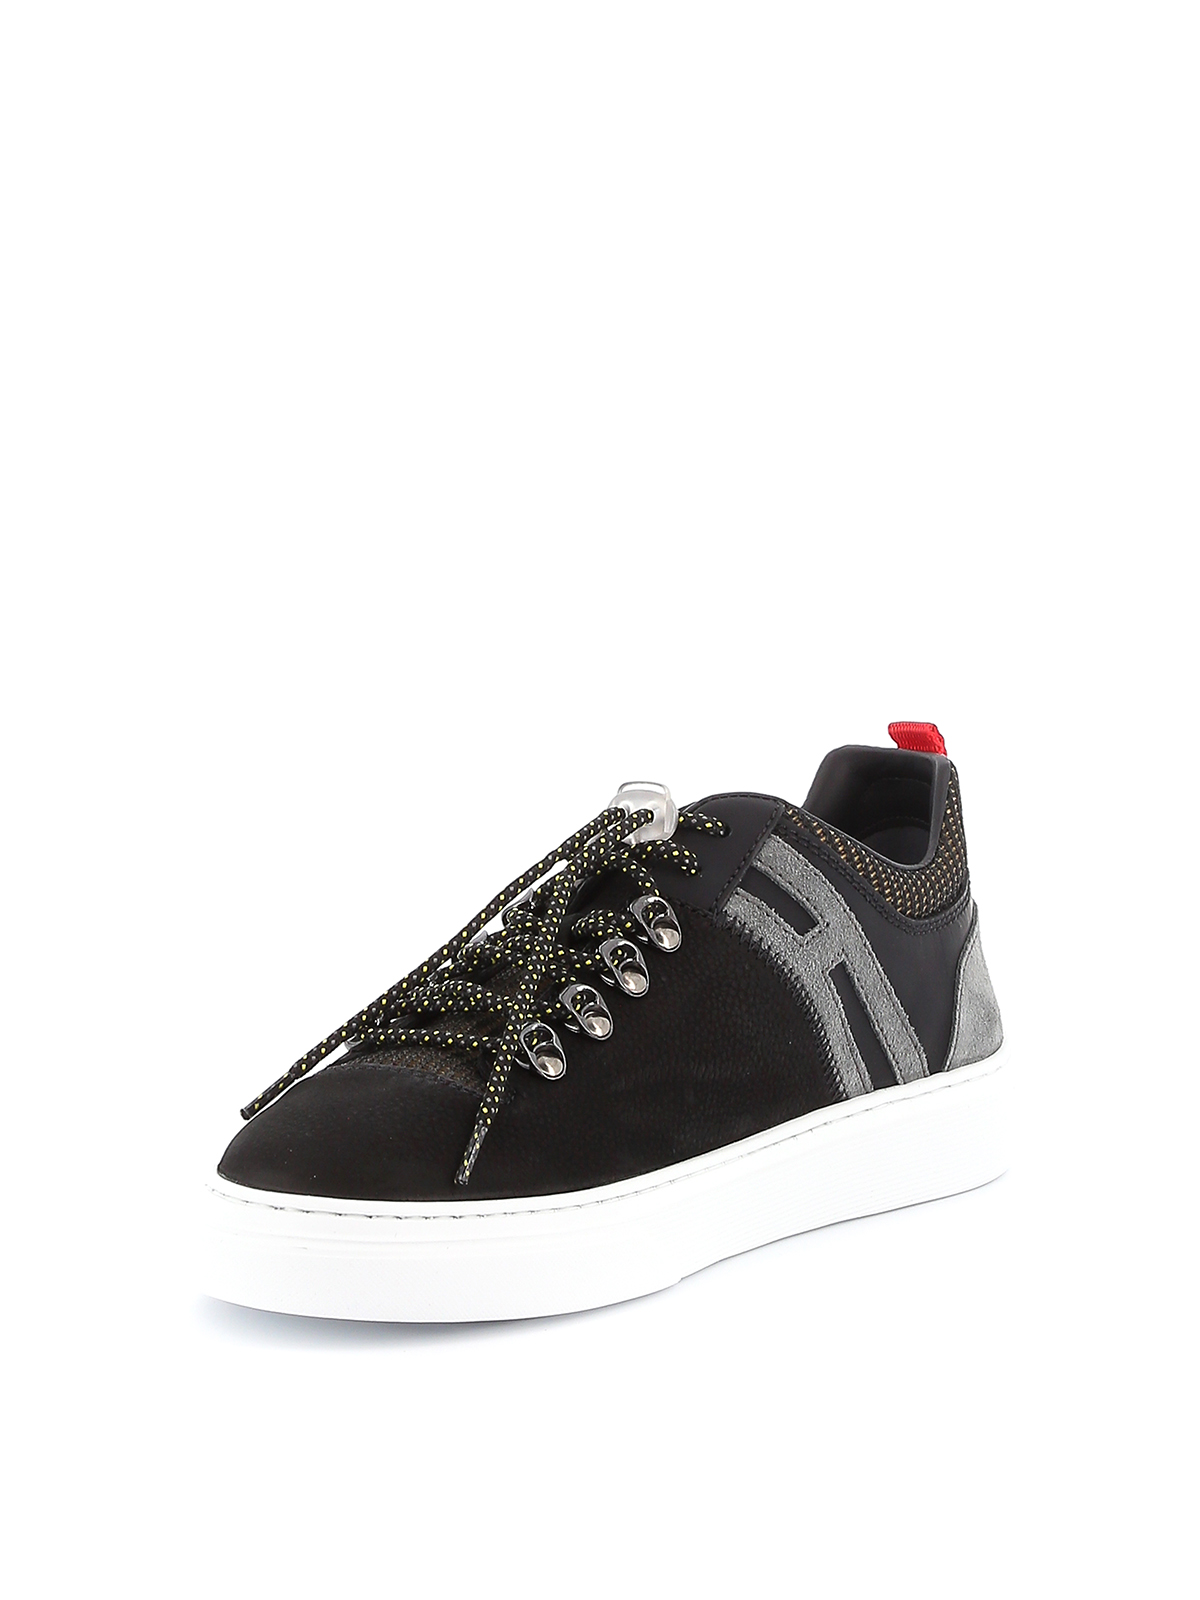 Trainers Hogan - H365 sneakers with hiking style laces ...